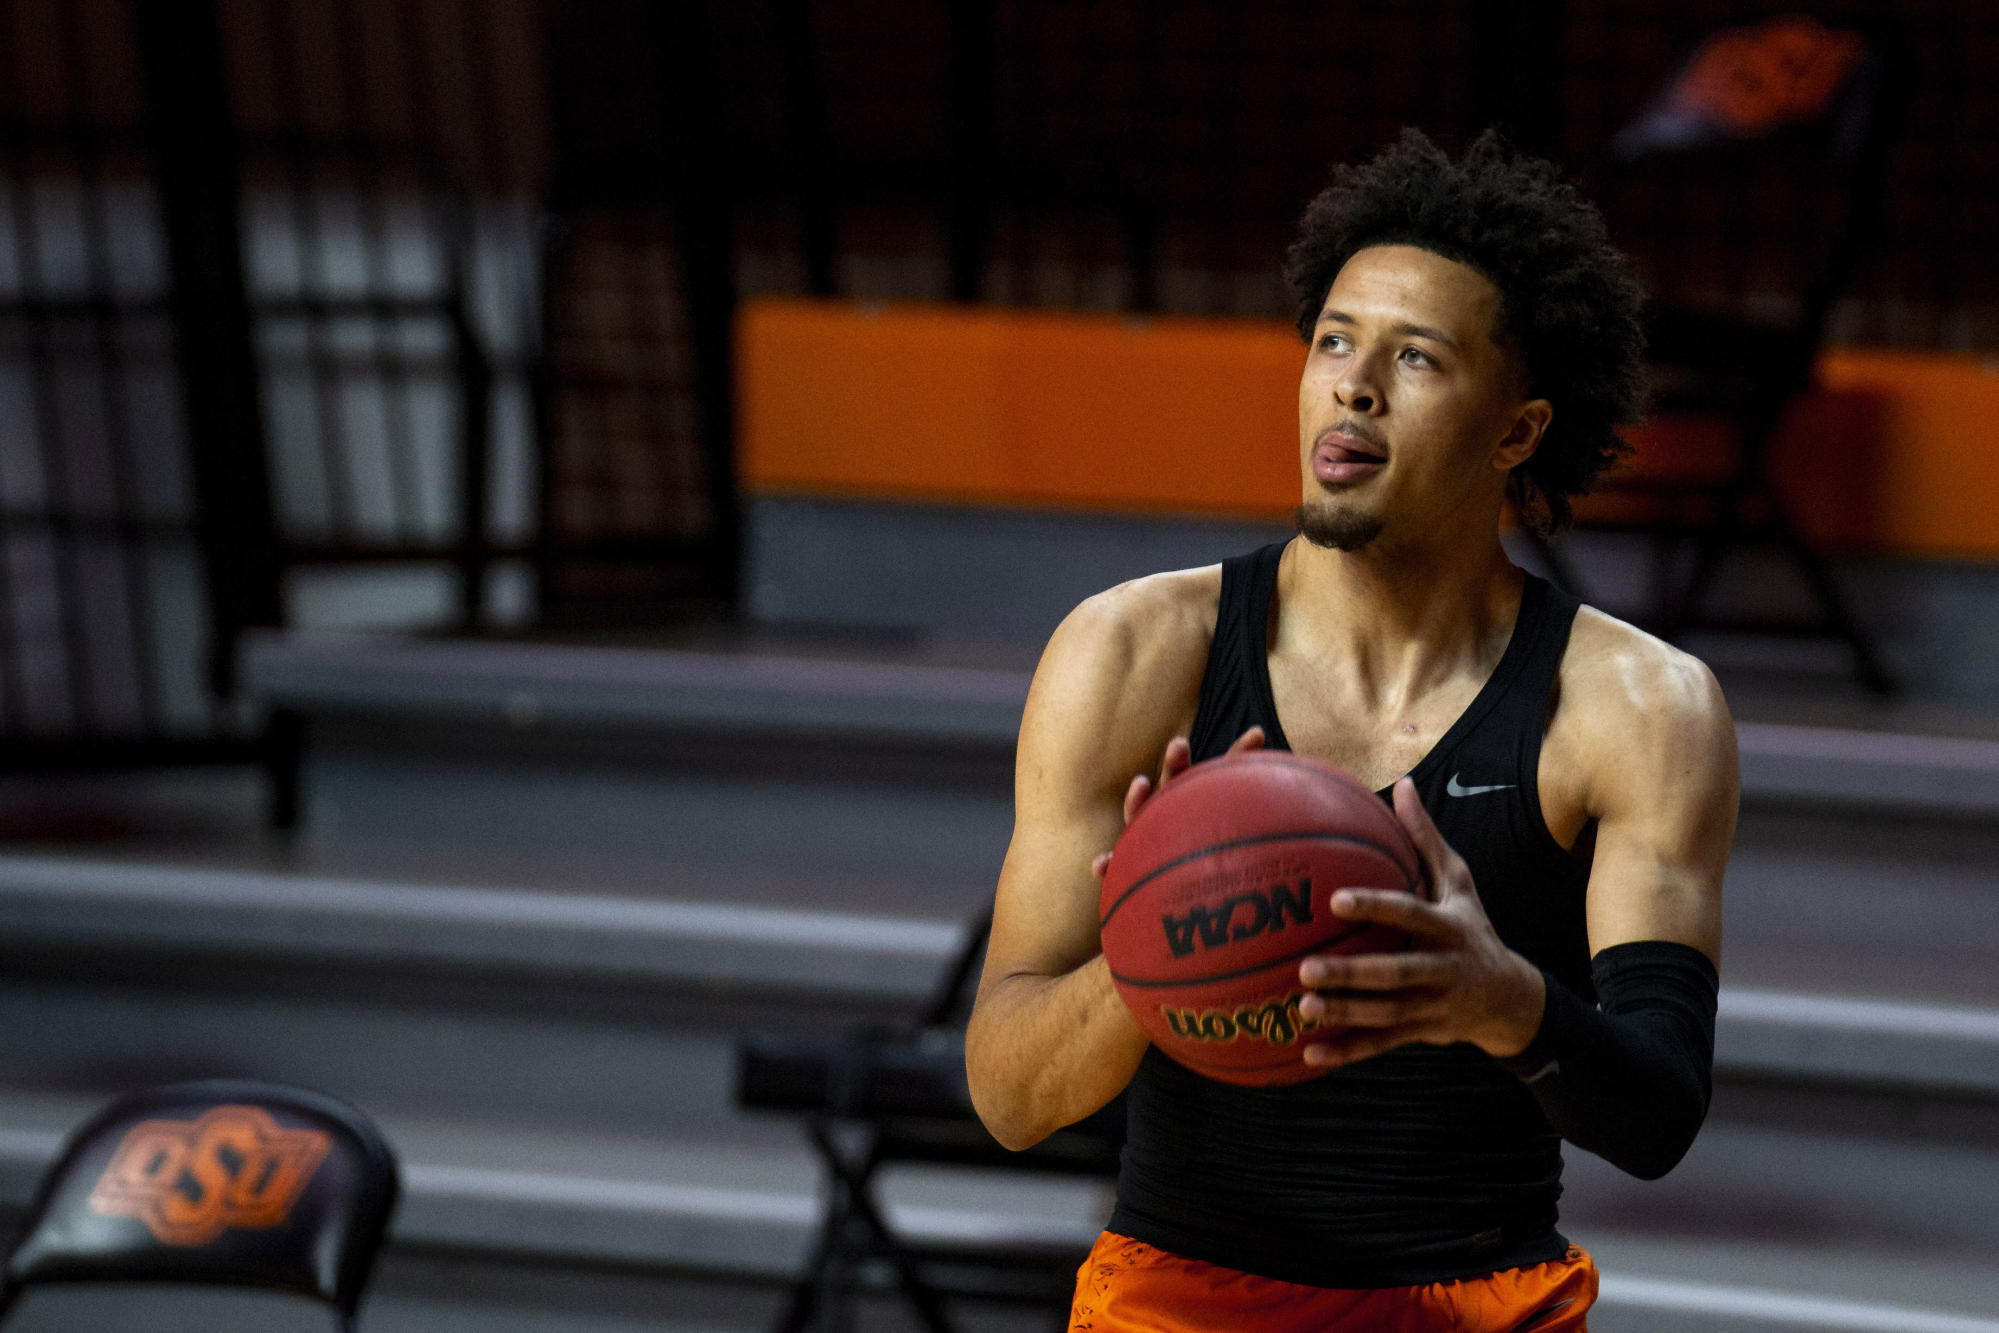 The case for NBA draft No. 1 pick: Cade Cunningham is favorite, but 2 others are intriguing